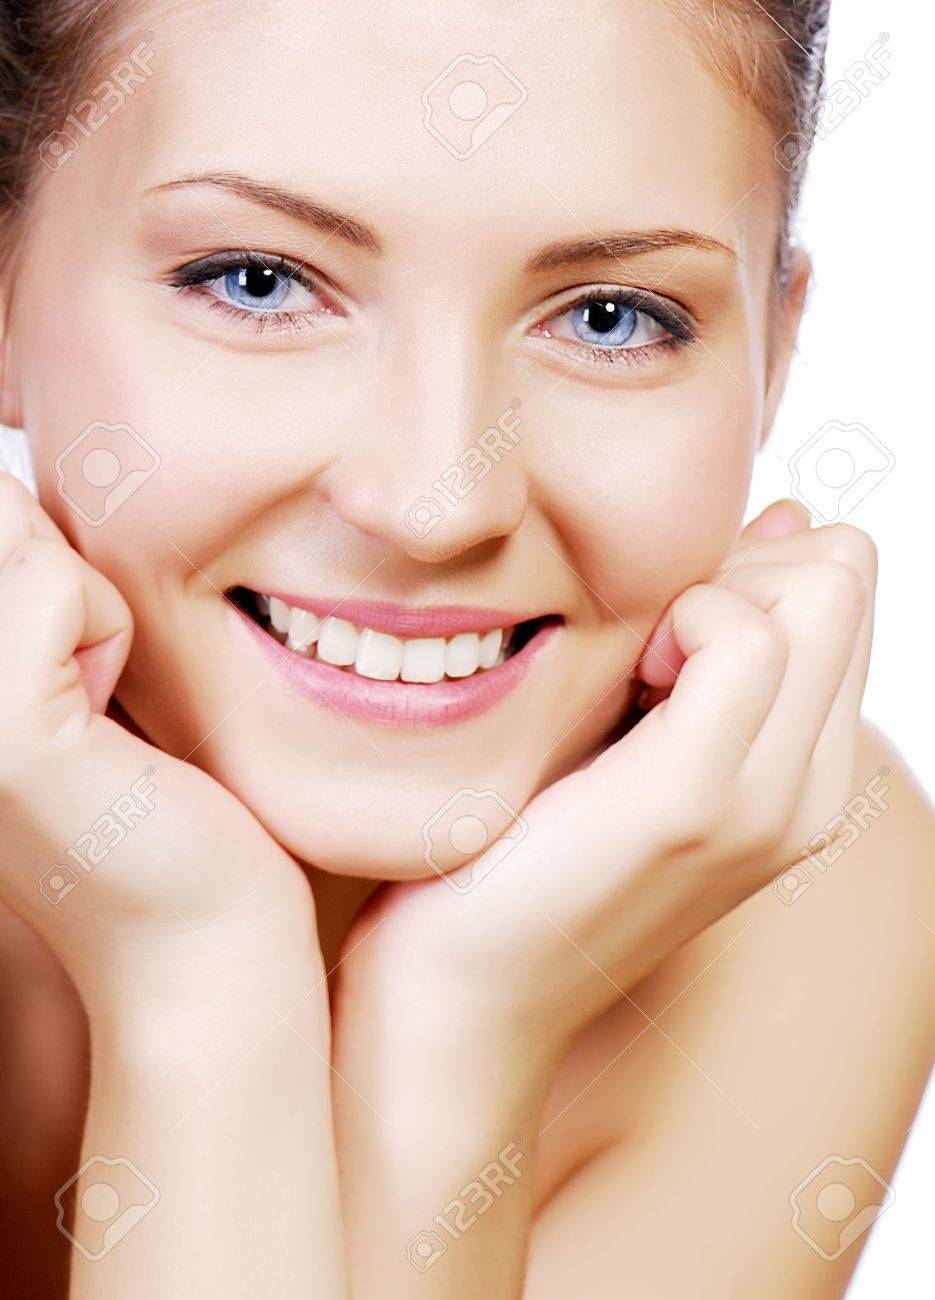 Beautiful smiling young adult teen face with hand at face Stock Photo - 3704531